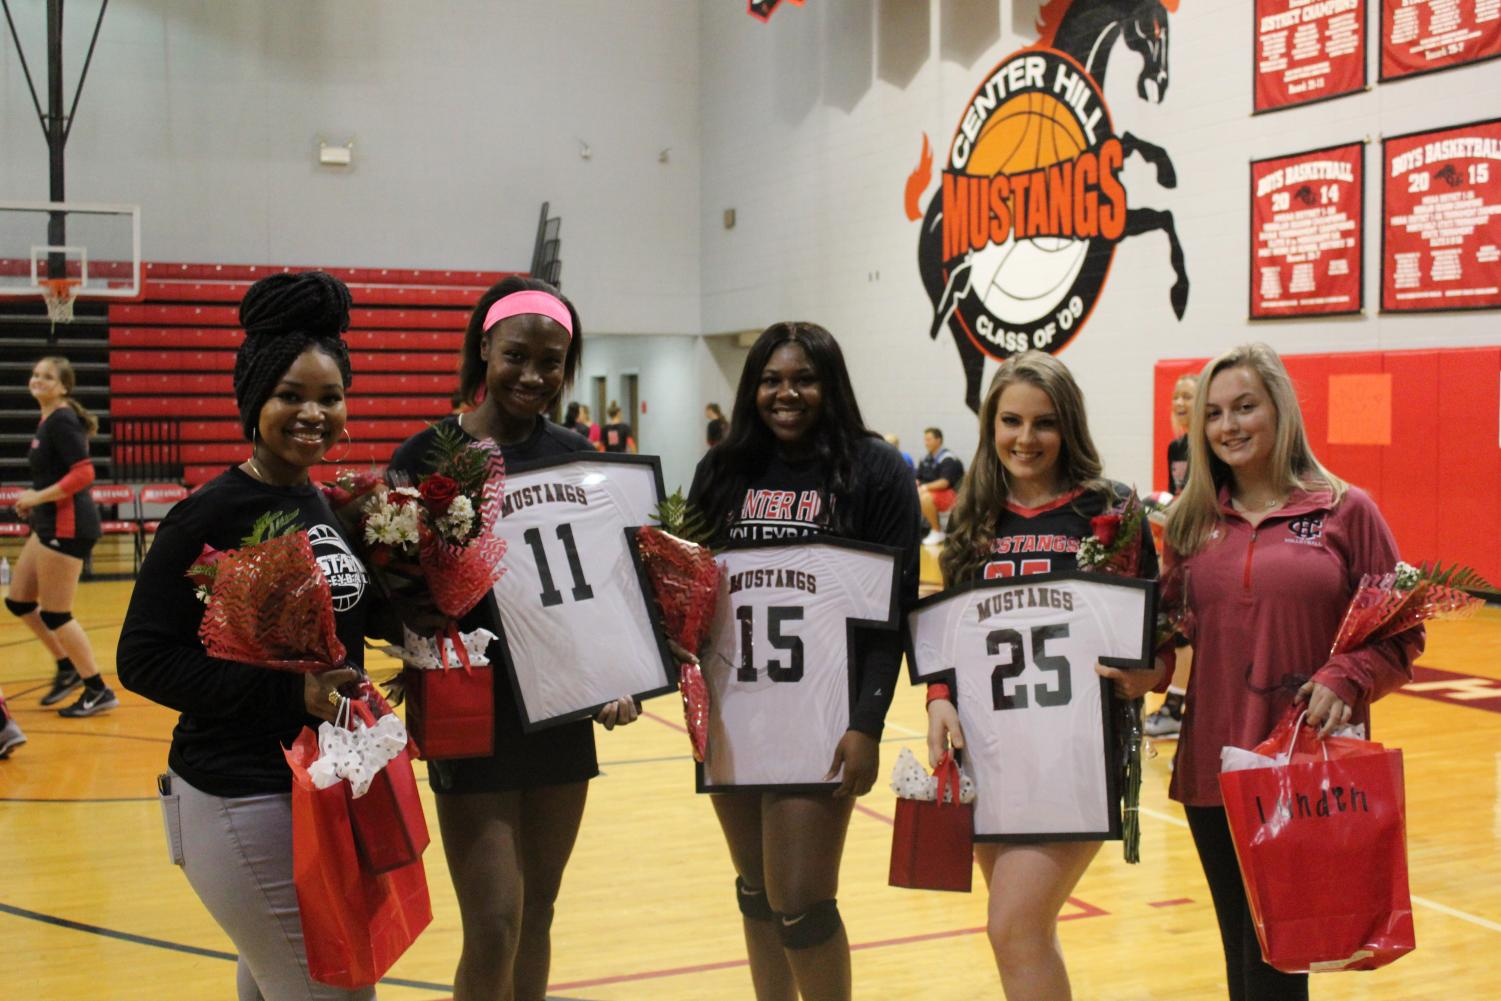 Volleyball players and managers were recognized at Senior Night Oct. 8. From left are Jada Totten, manager; Zakhia Taylor, middle hitter; Lauryn Bulloch, right side hitter; Lydia Walker, outside/right side hitter; and Lunden Crews, manager. Anna Jernigan, libero, had the flu and missed the event.